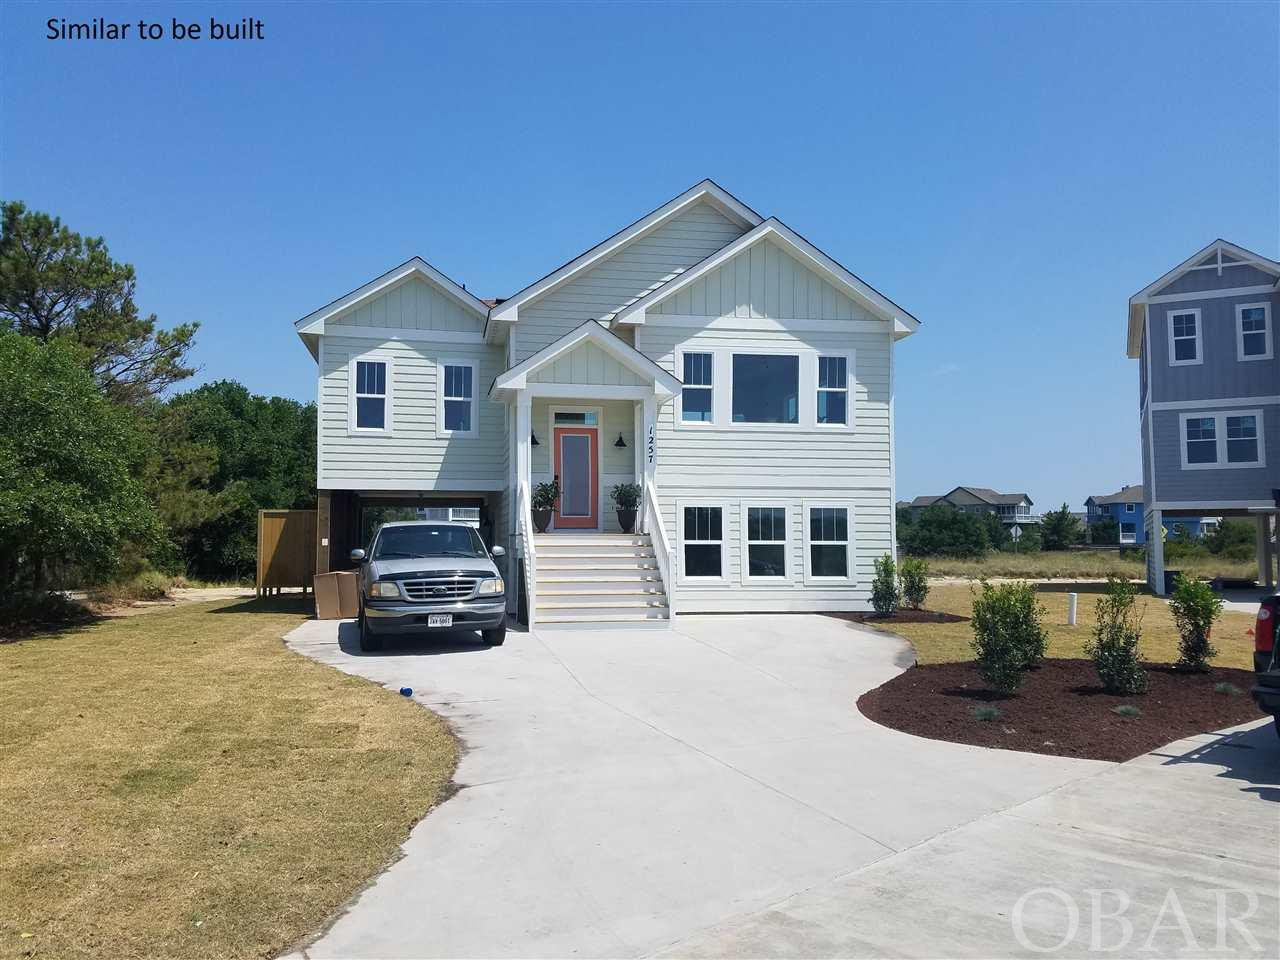 124 Westside Court,Nags Head,NC 27959,3 Bedrooms Bedrooms,2 BathroomsBathrooms,Residential,Westside Court,102797